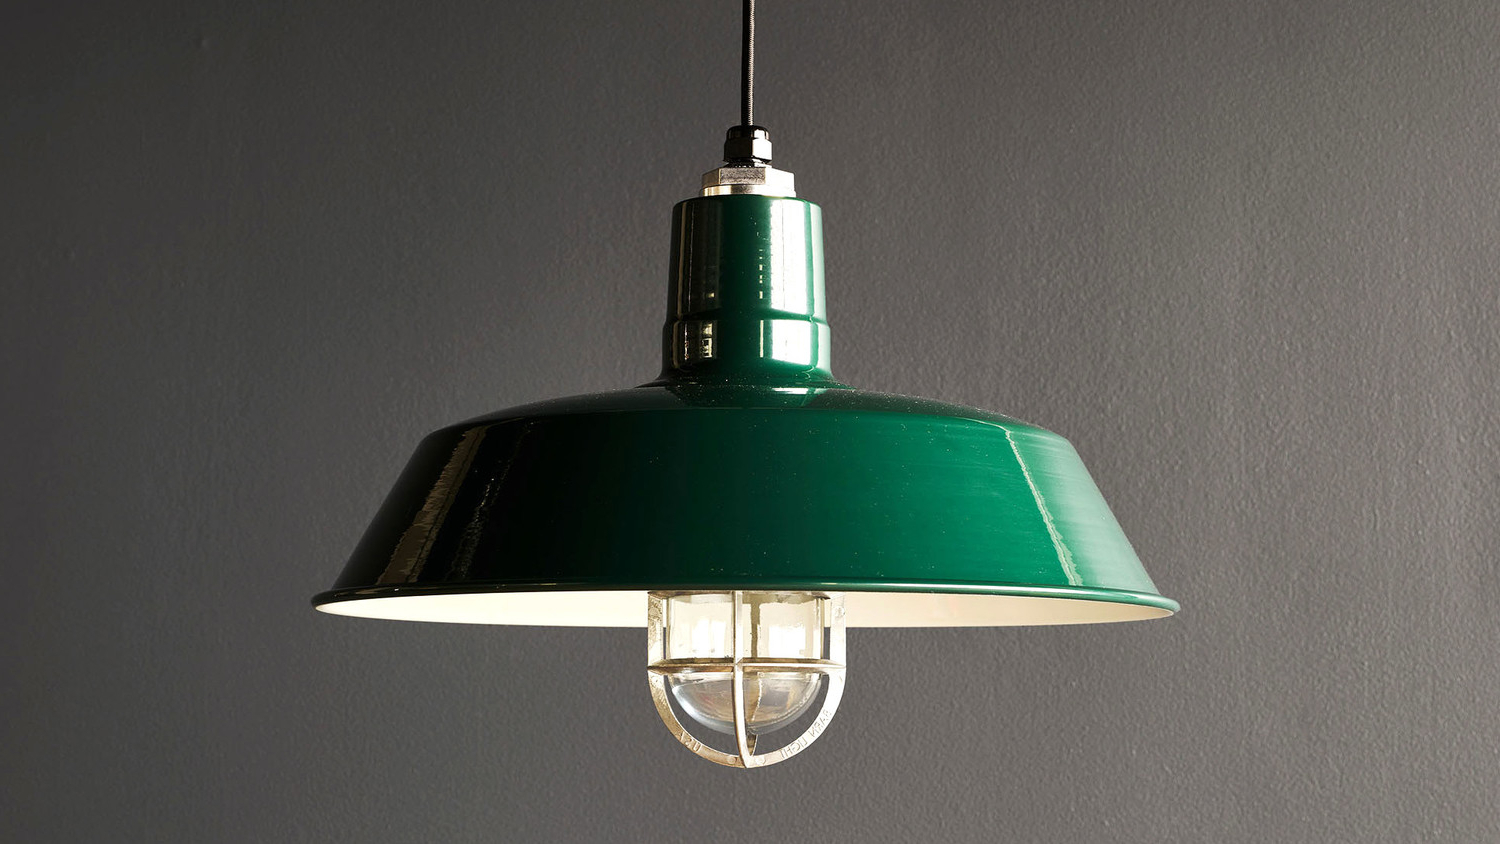 Ryker 1-Light Single Dome Pendants with regard to Current Spectacular Savings On Monadnock 1-Light Single Dome Pendant